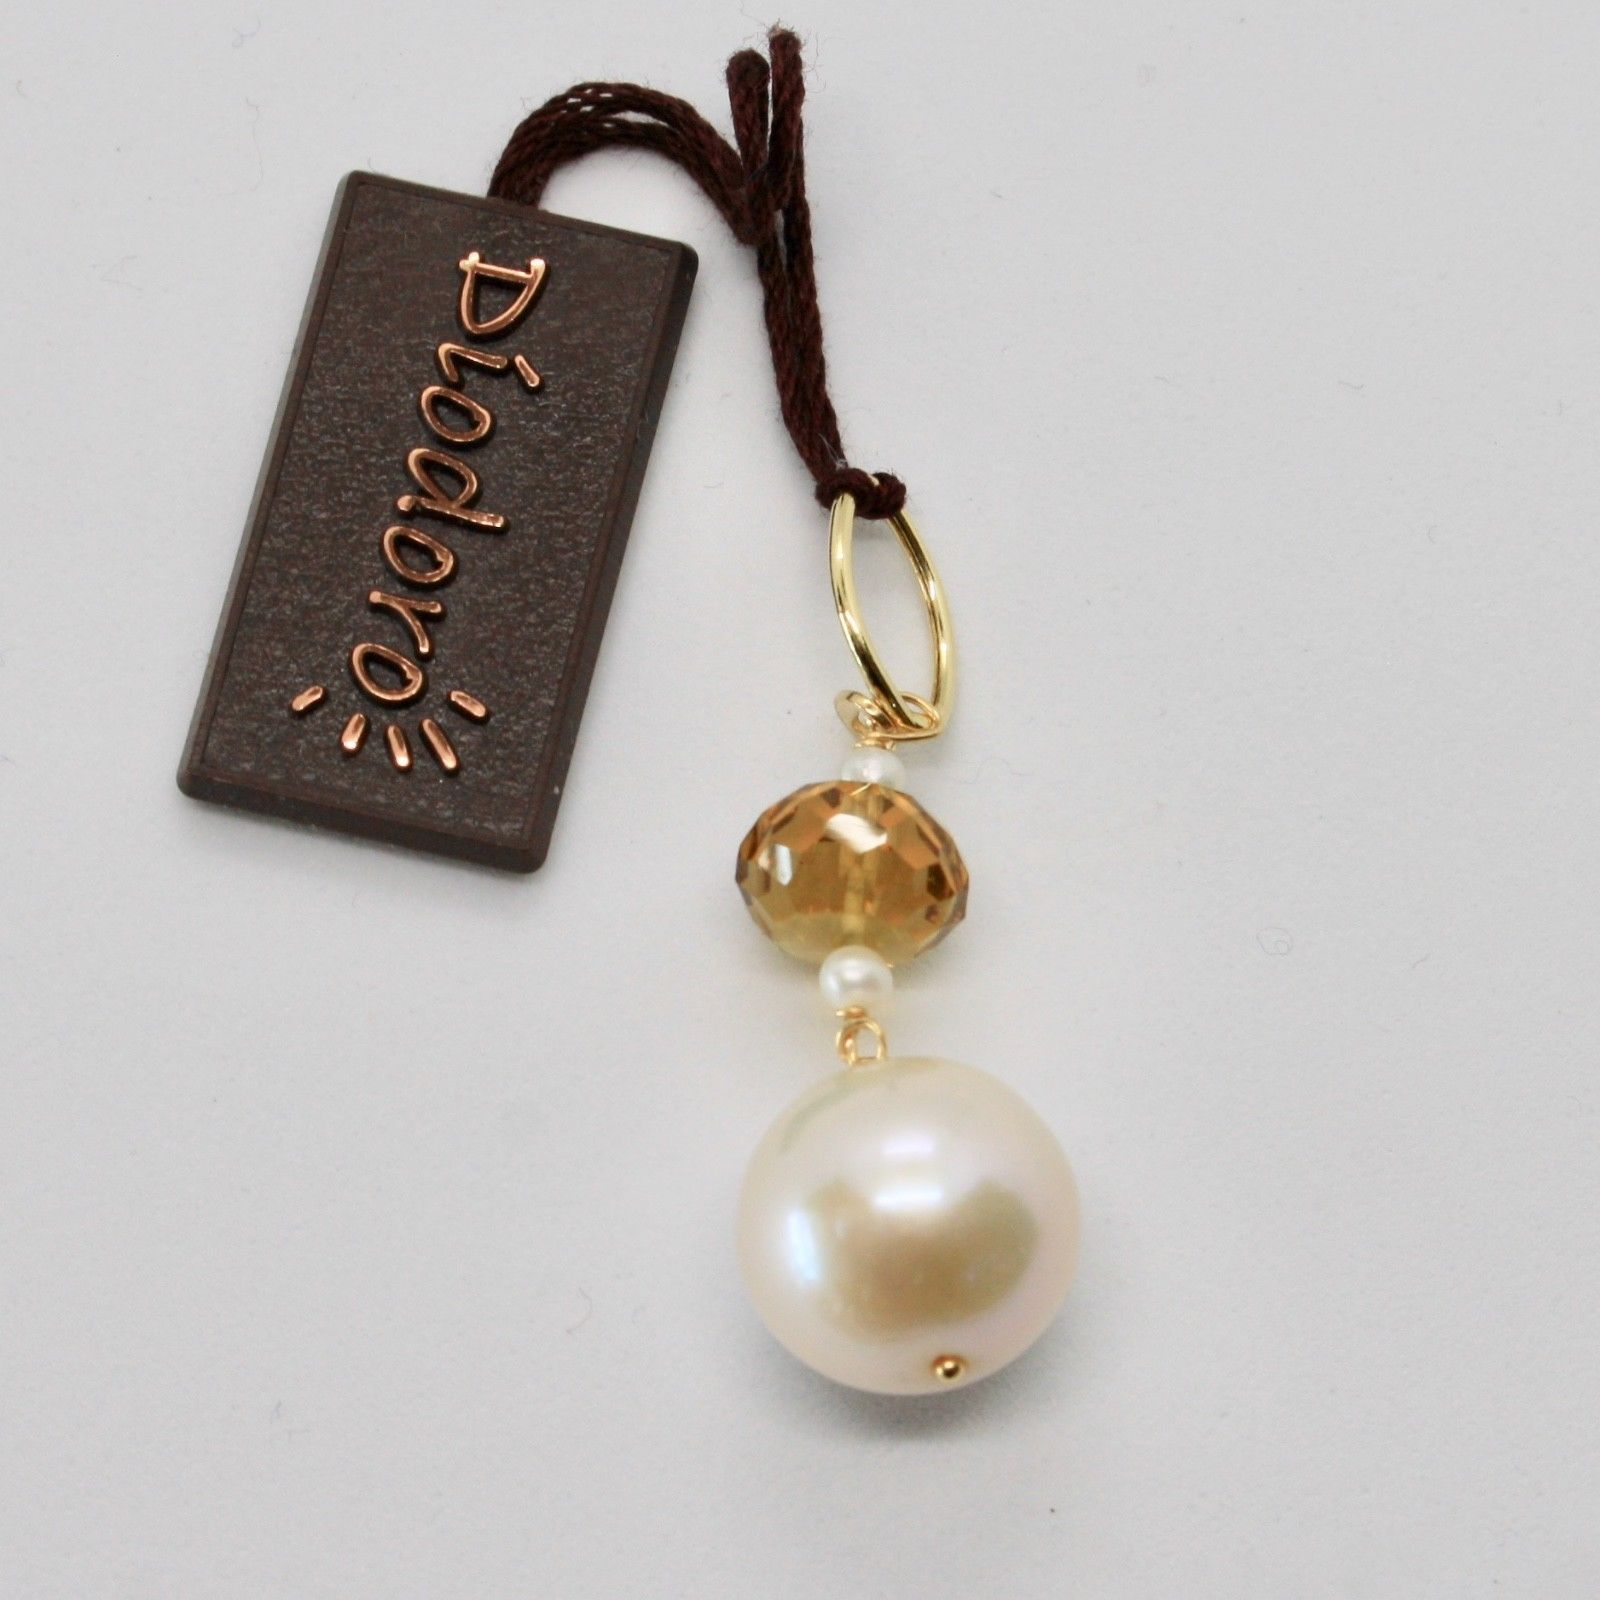 PENDANT YELLOW GOLD 18KT 750 WITH PEARL WHITE OF WATER DOLCE AND QUARTZ BEER